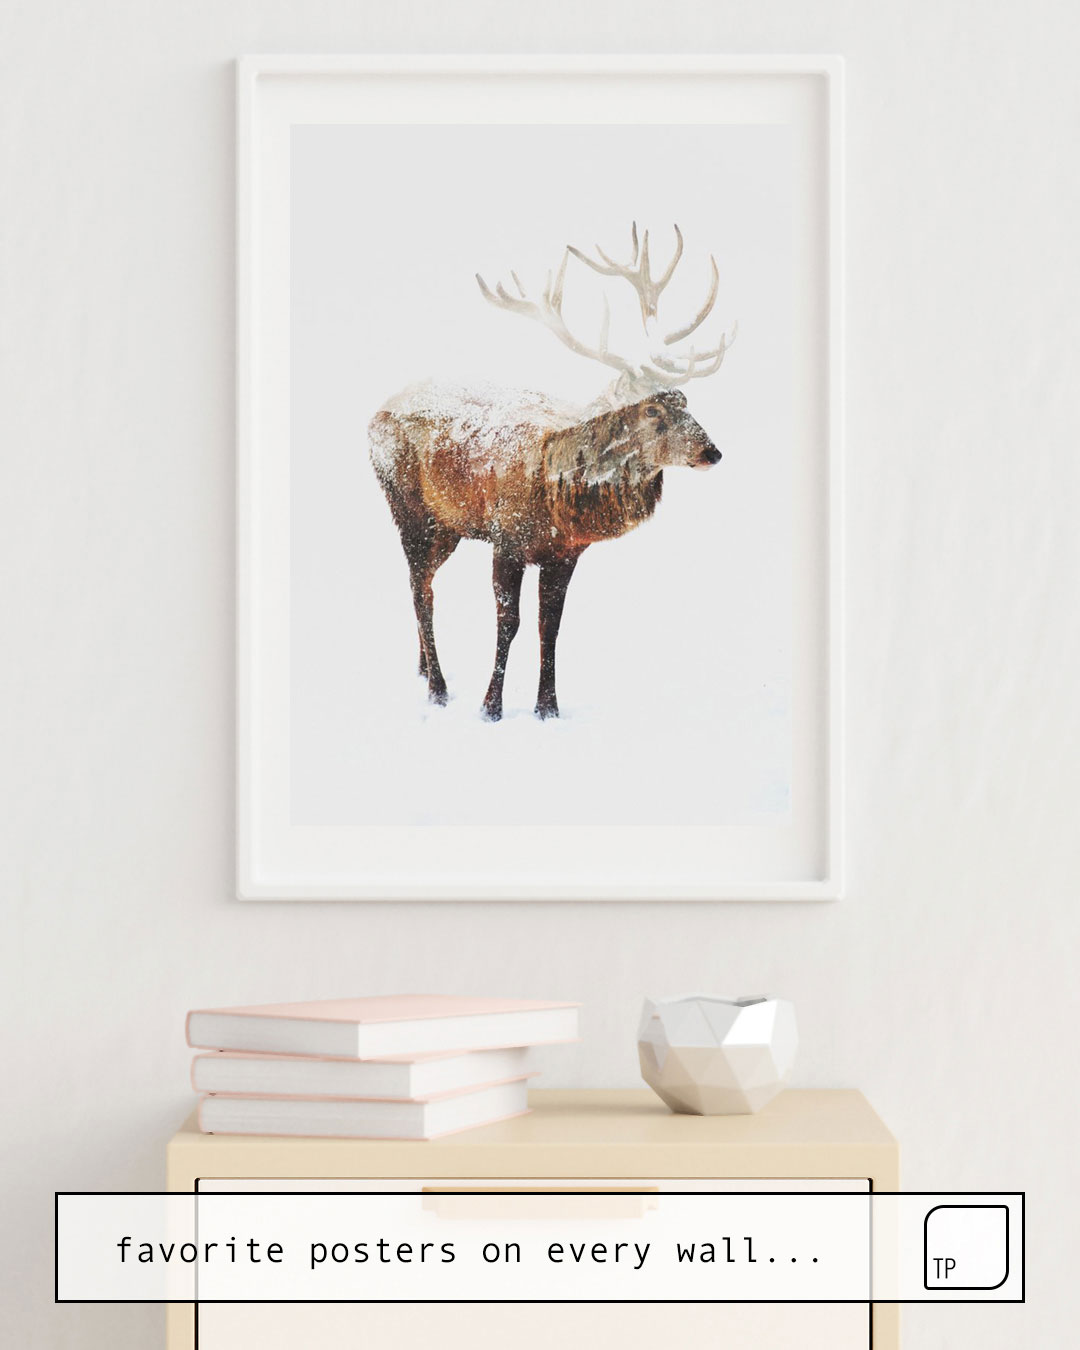 Poster | ARCTIC DEER by Andreas Lie